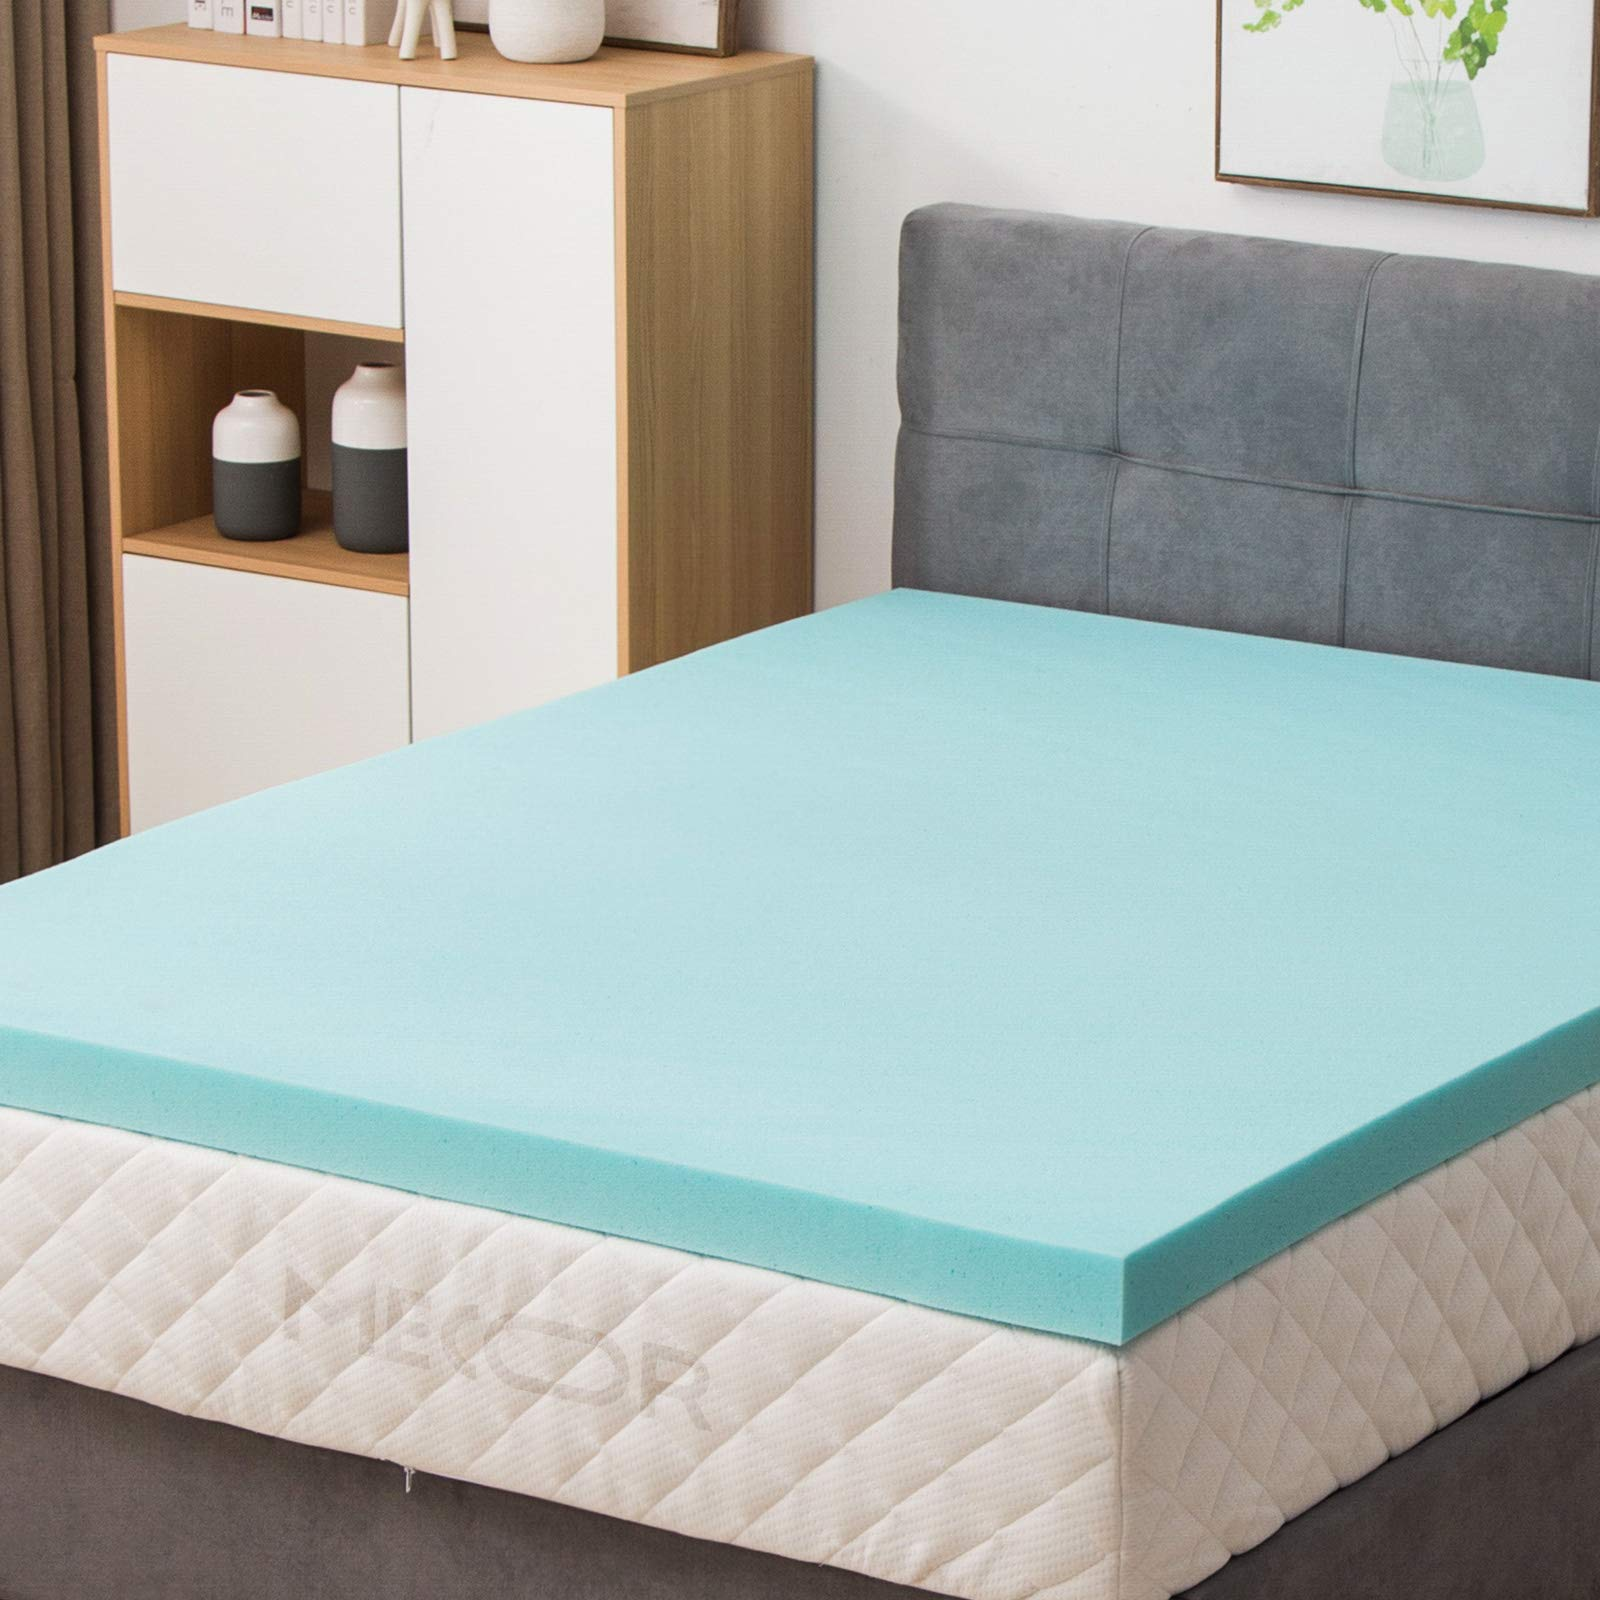 mecor 4 Inch 4'' Mattress Topper Full Size-4In Gel Infused Memory Foam Mattress Topper w/CertiPUR-US Certified, Soft but Firm Support by mecor